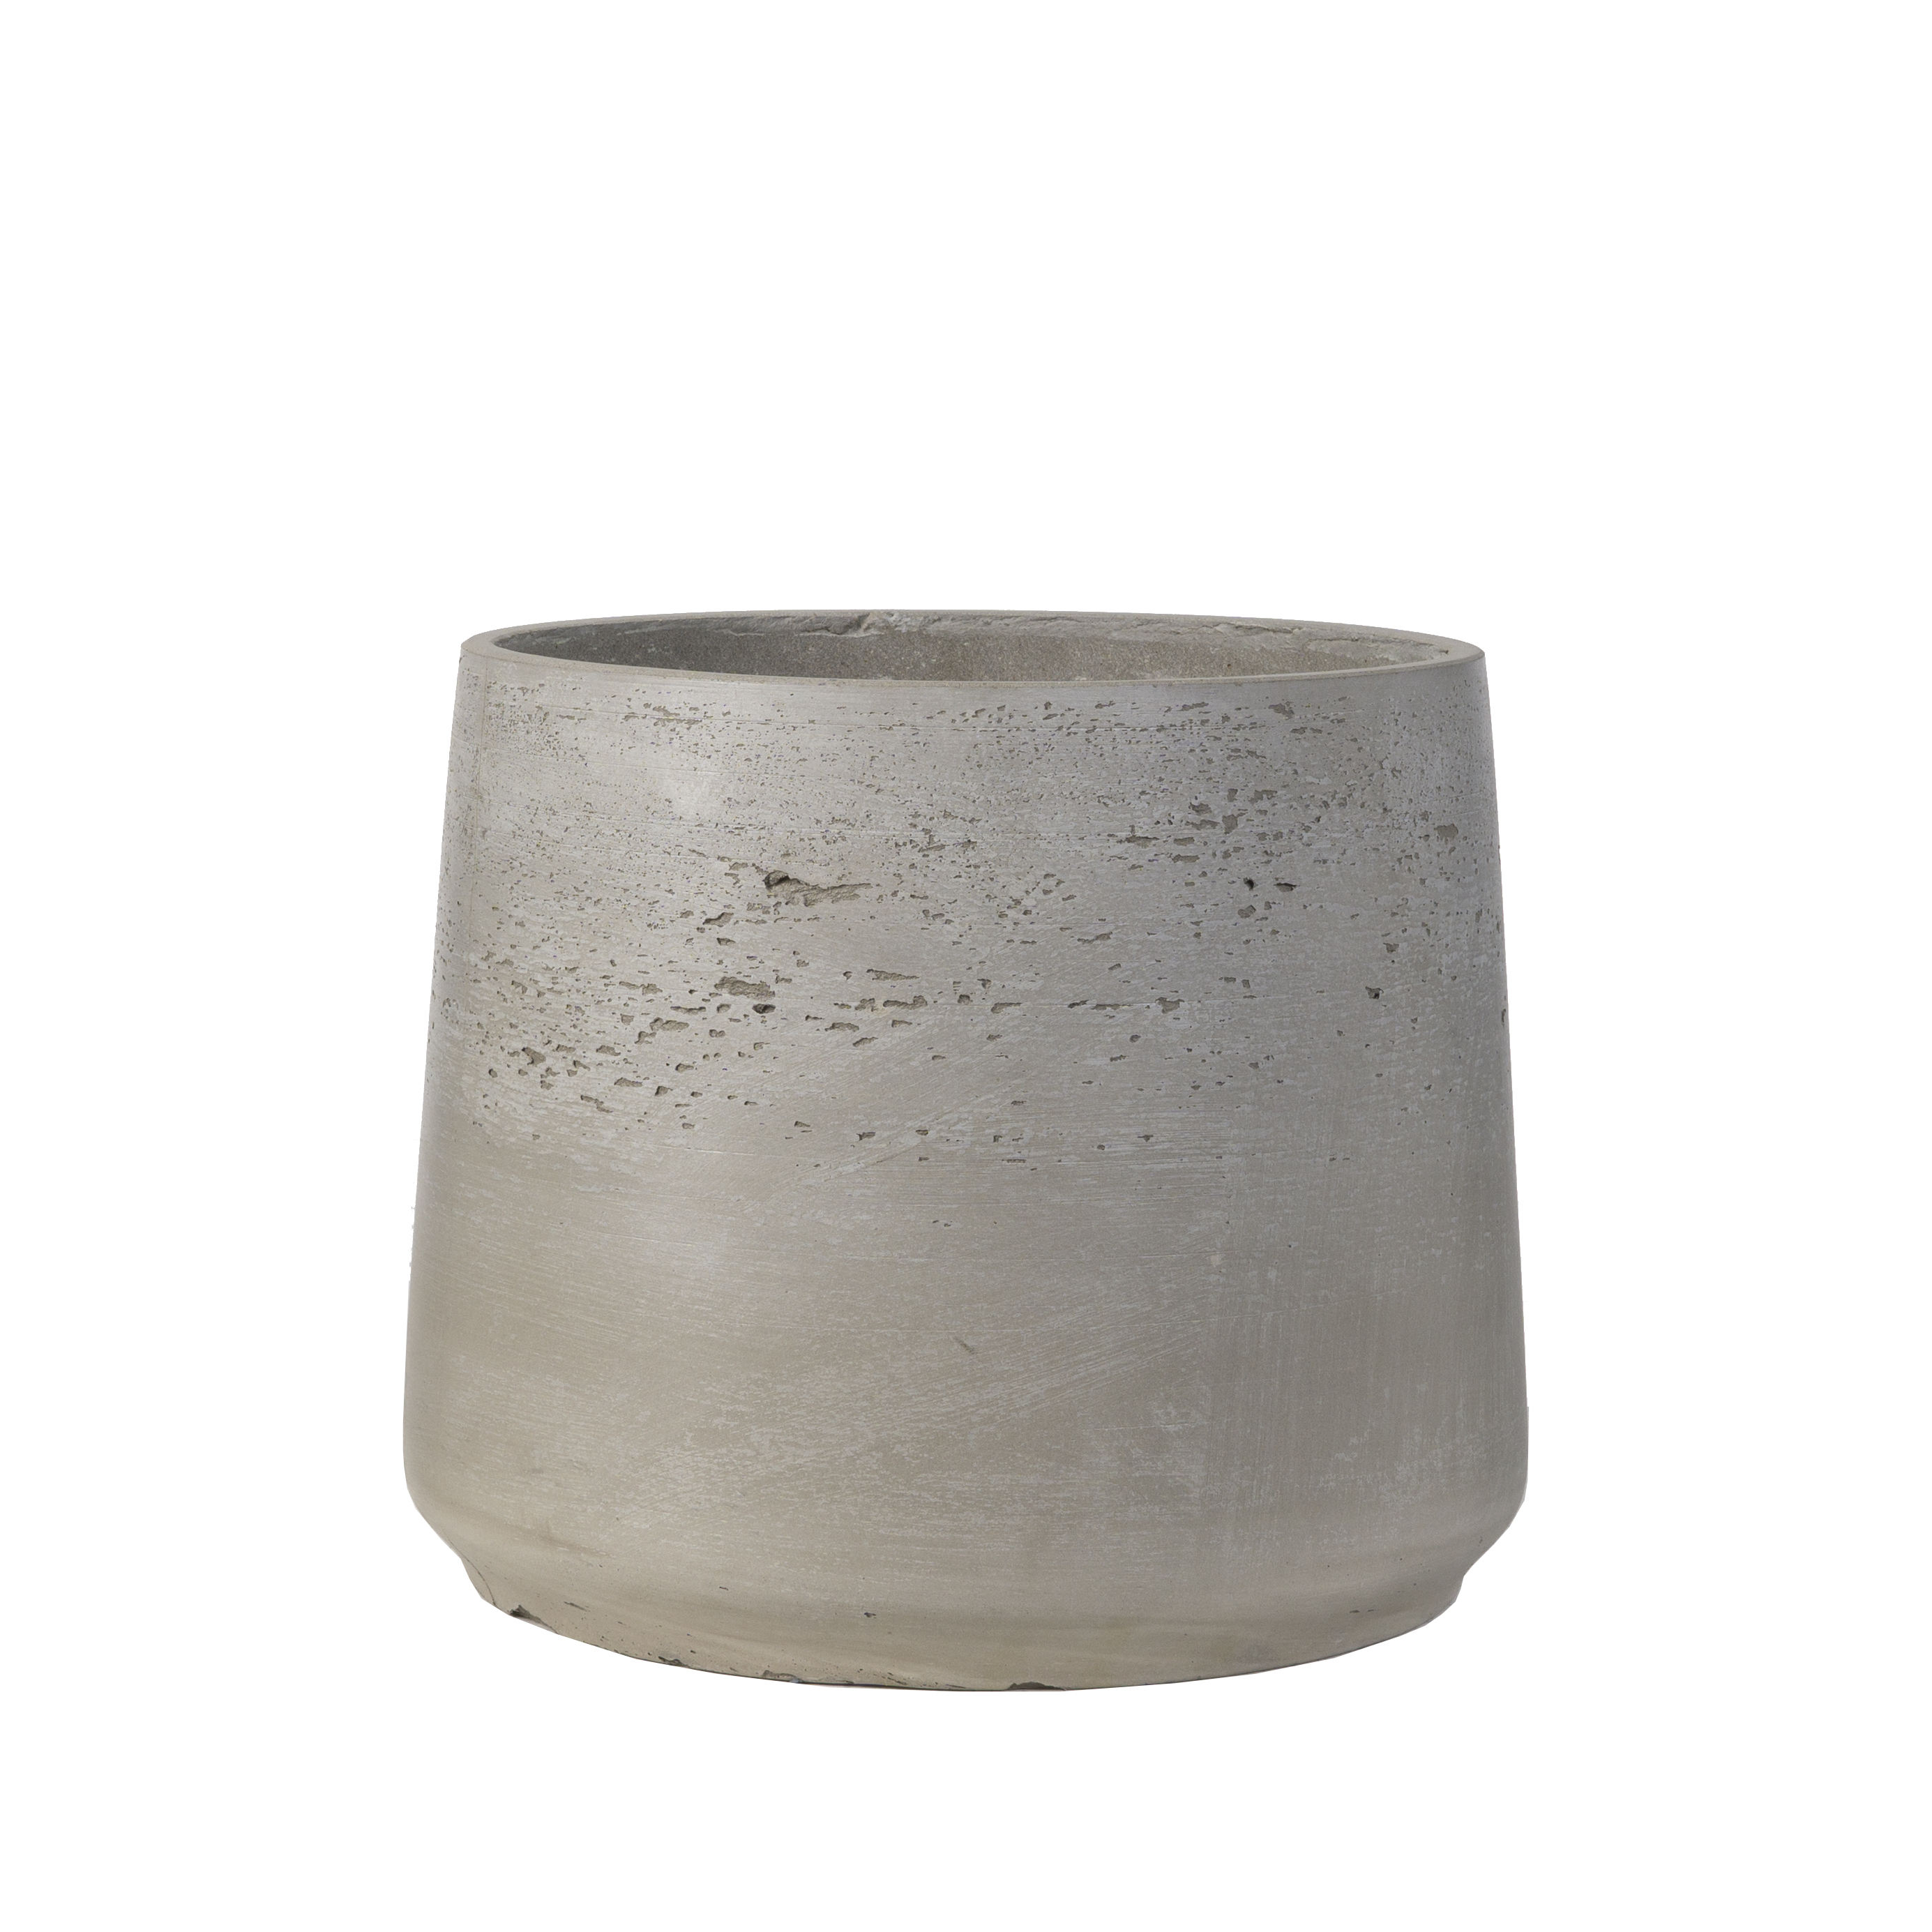 Finished raw cement color concrete flower pot head planter Thailand style with 3 sizes for indoor decorative